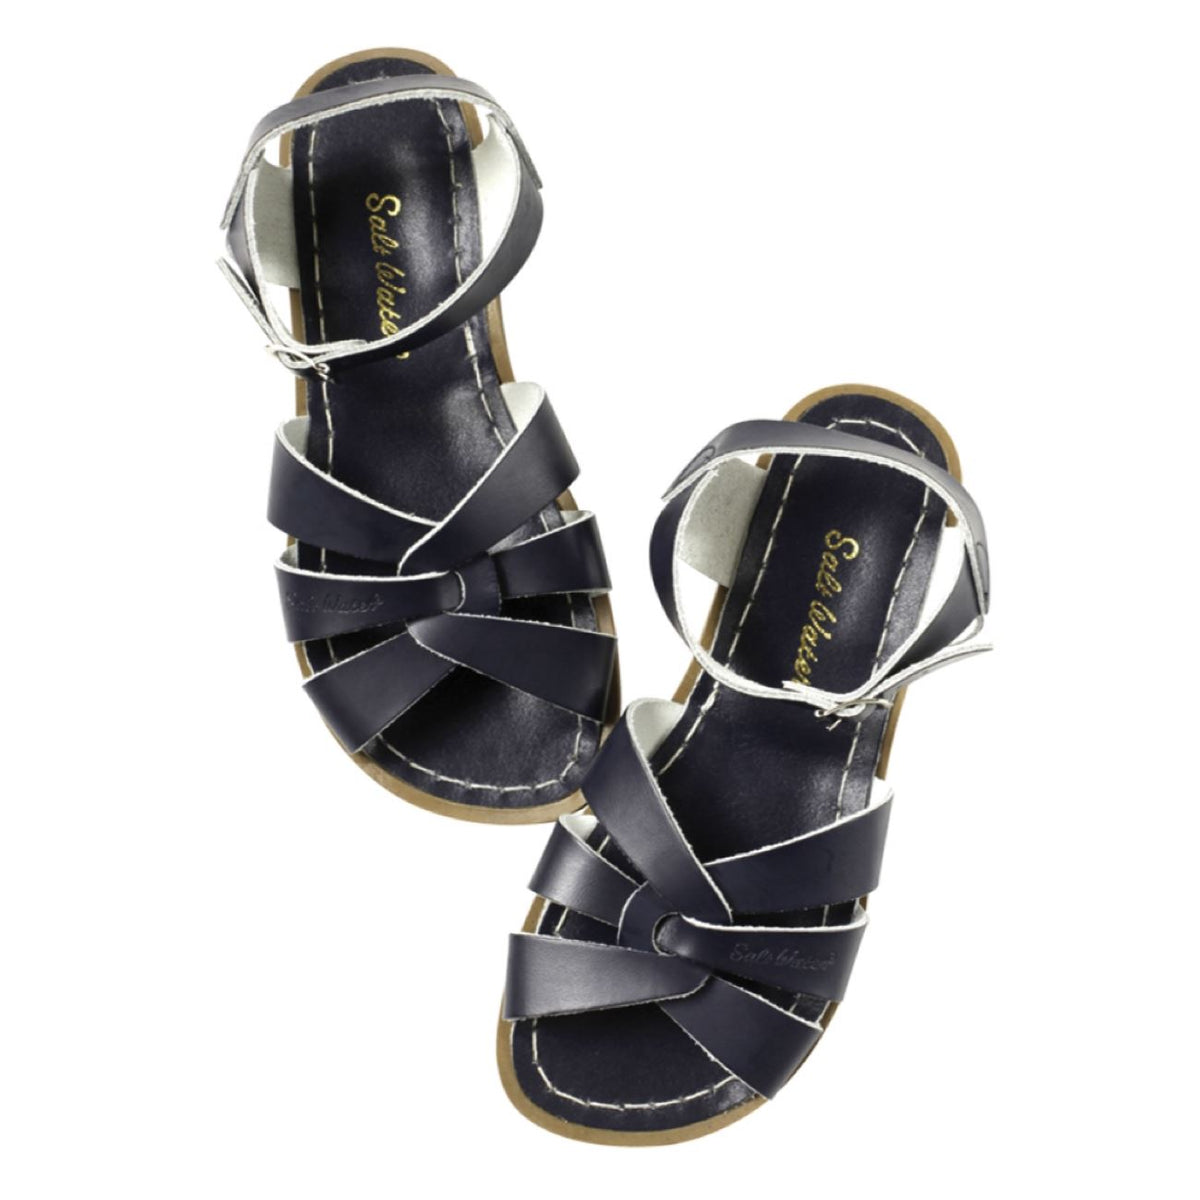 Salt Water Sandals, Original, Child, Navy Sandals Salt Water Sandals Navy 9